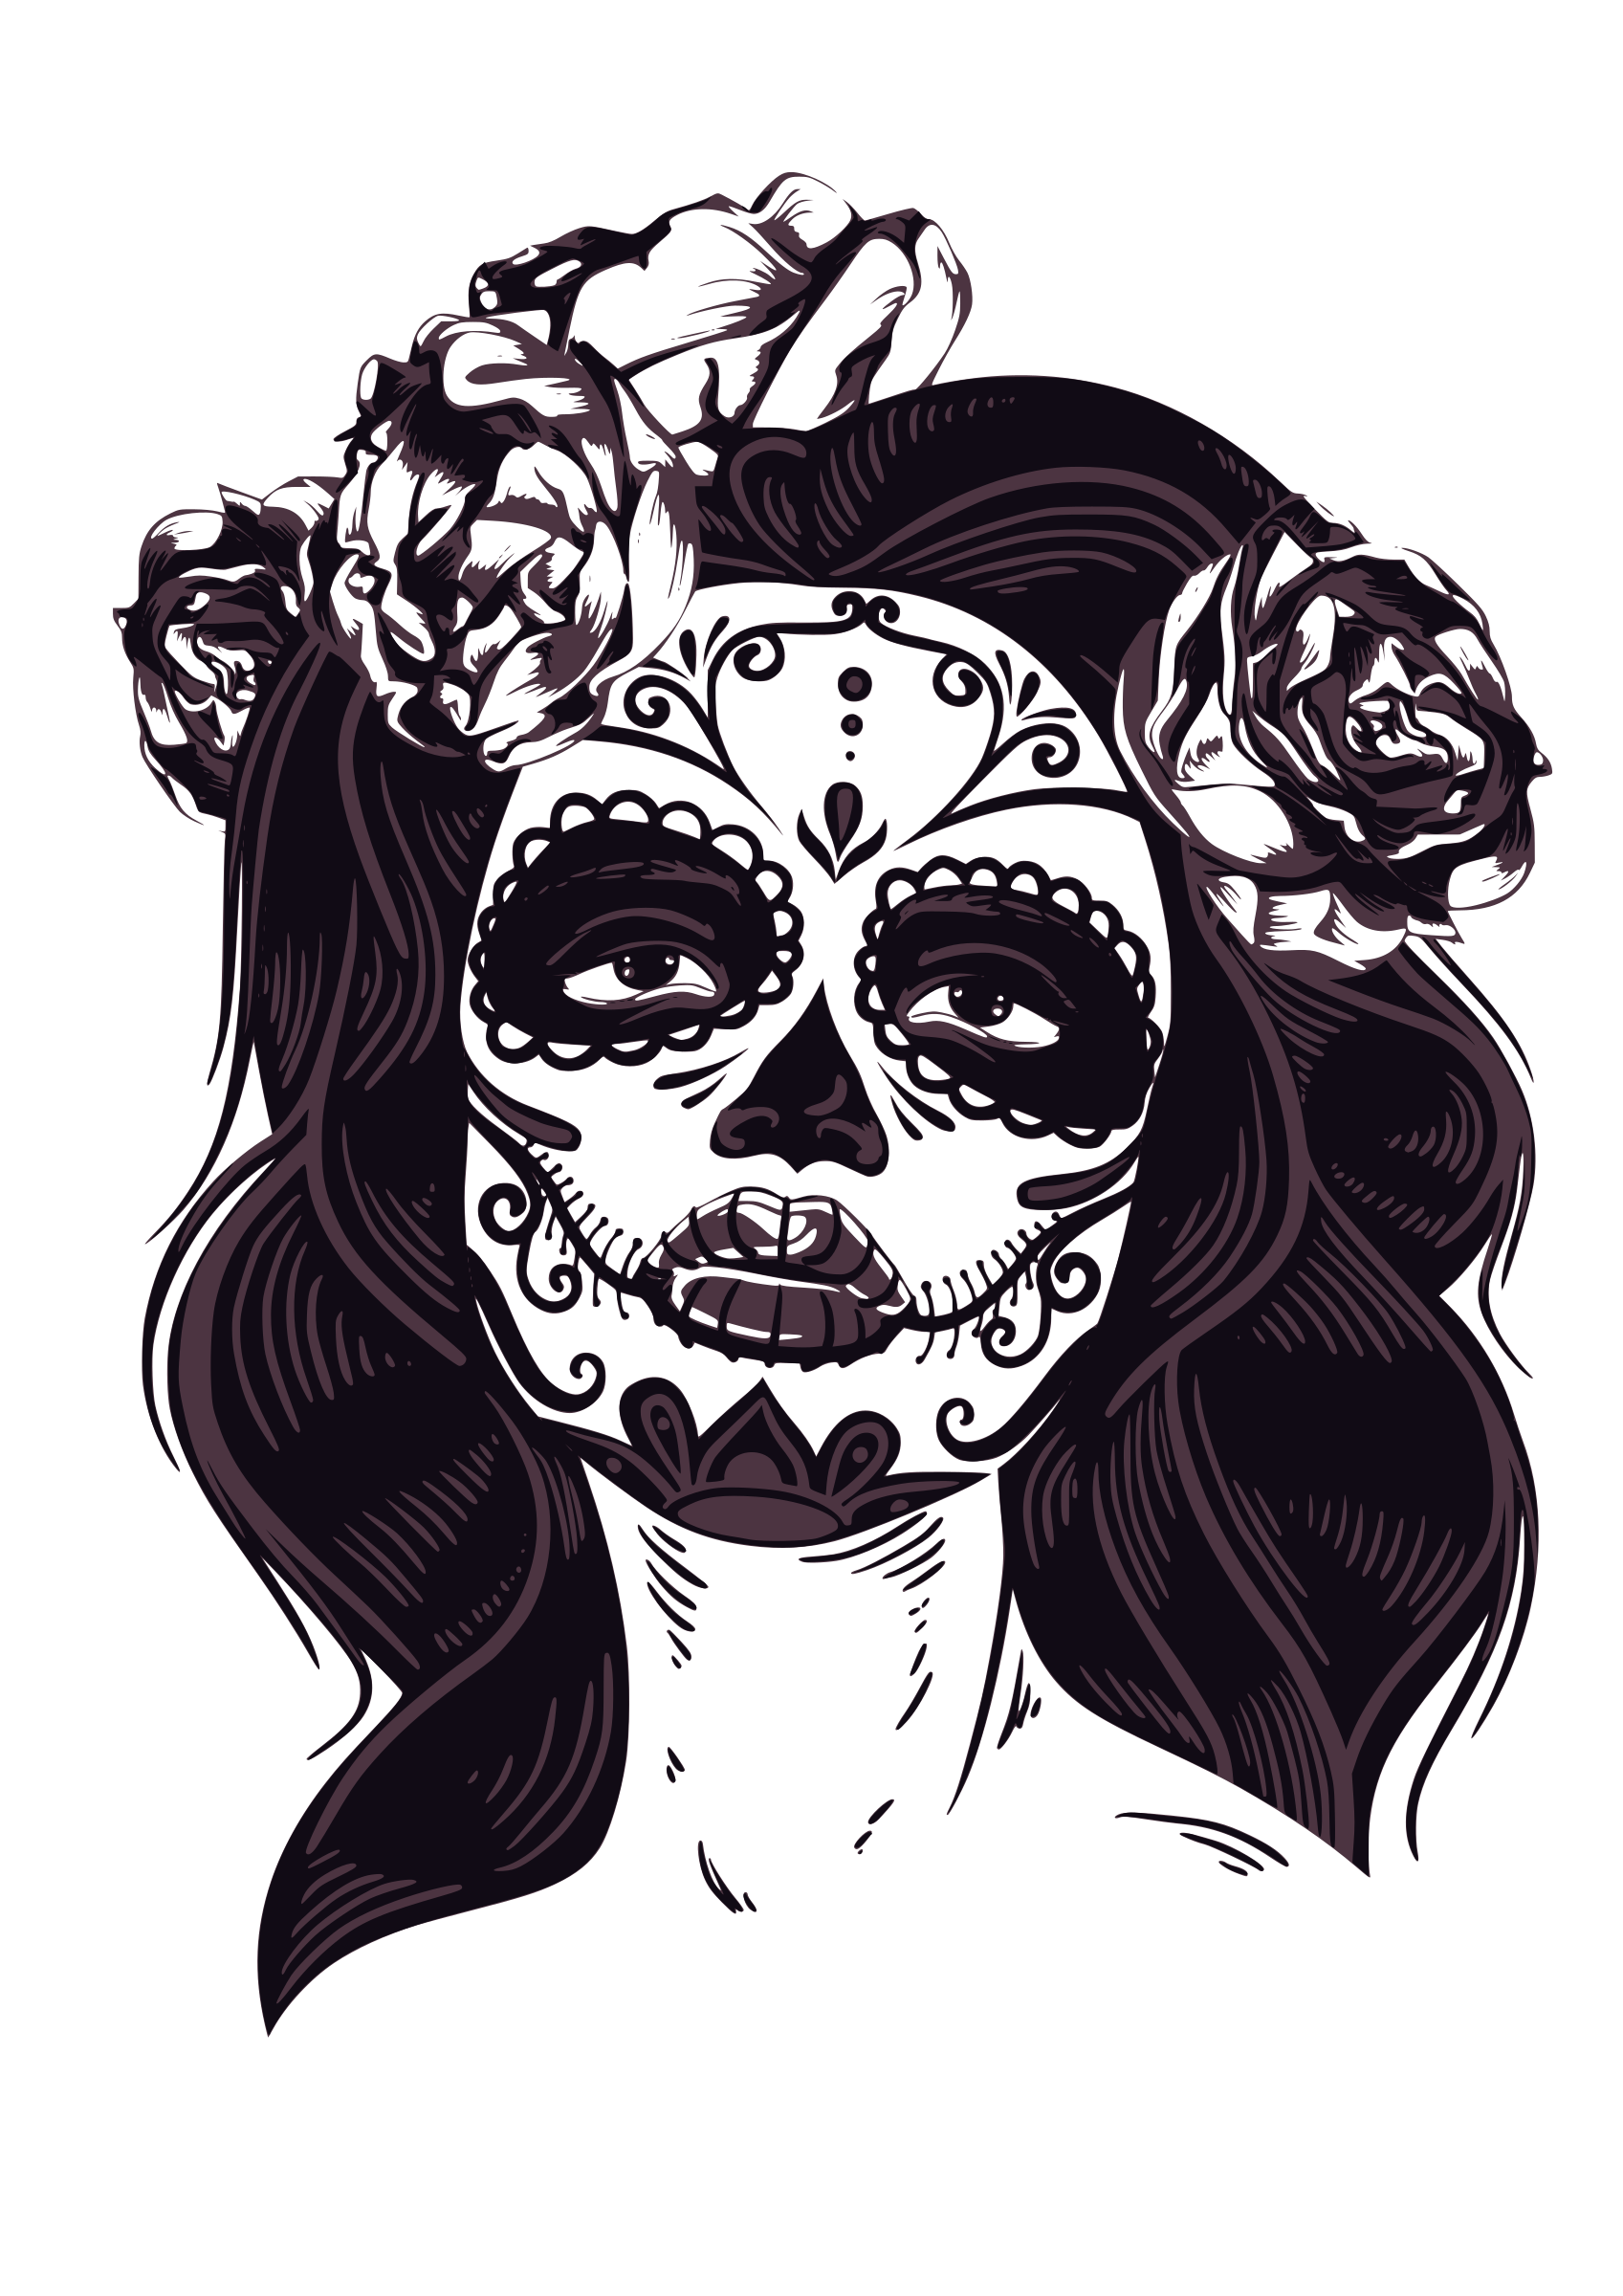 svg freeuse stock By isidoro ambasch embroidery. Catrina drawing